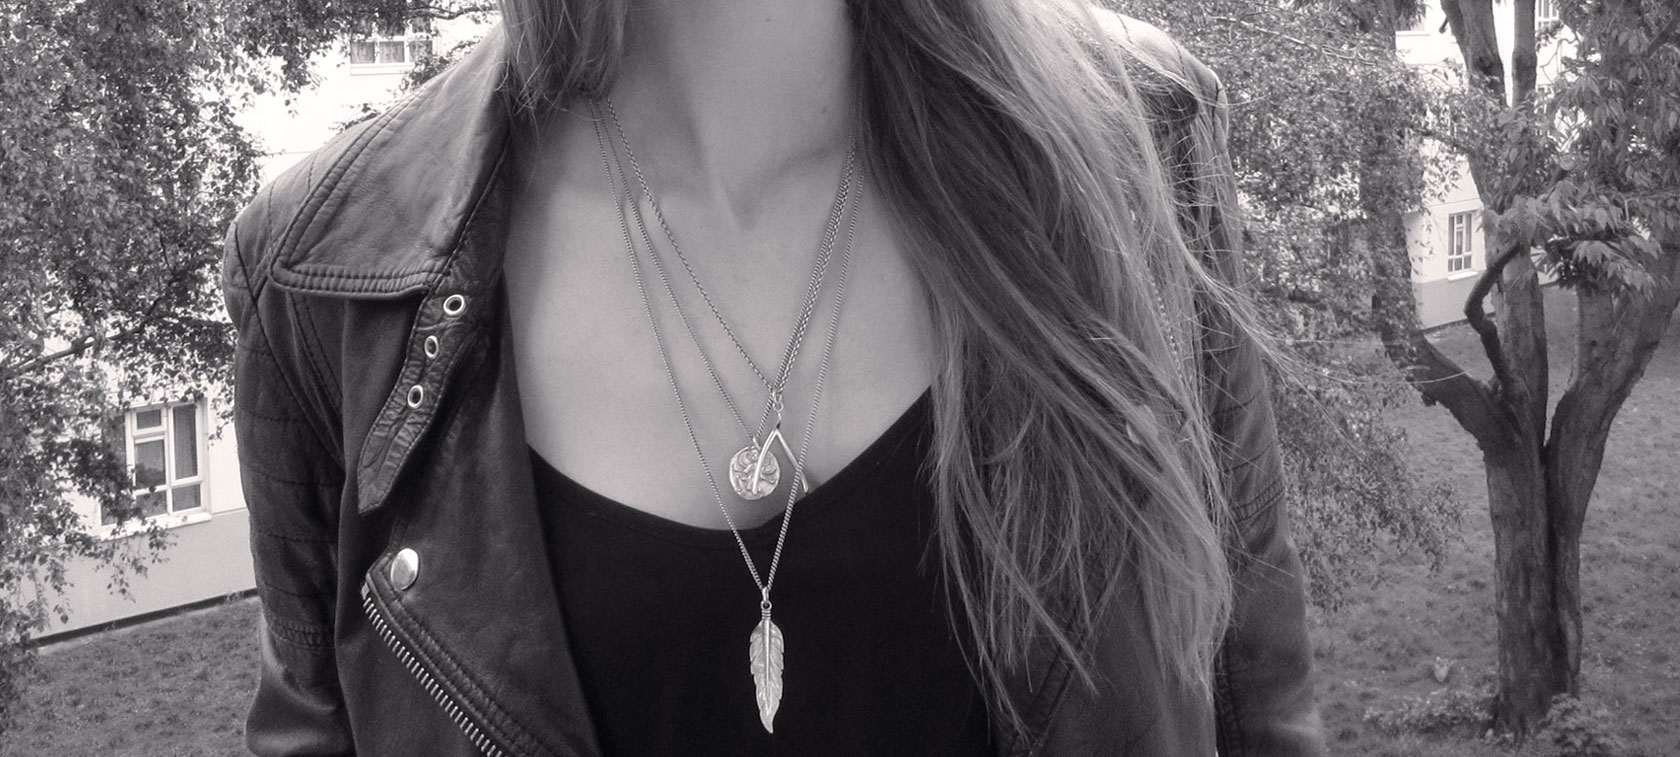 BANNER-JACKET-2 Astrape Coin Necklace